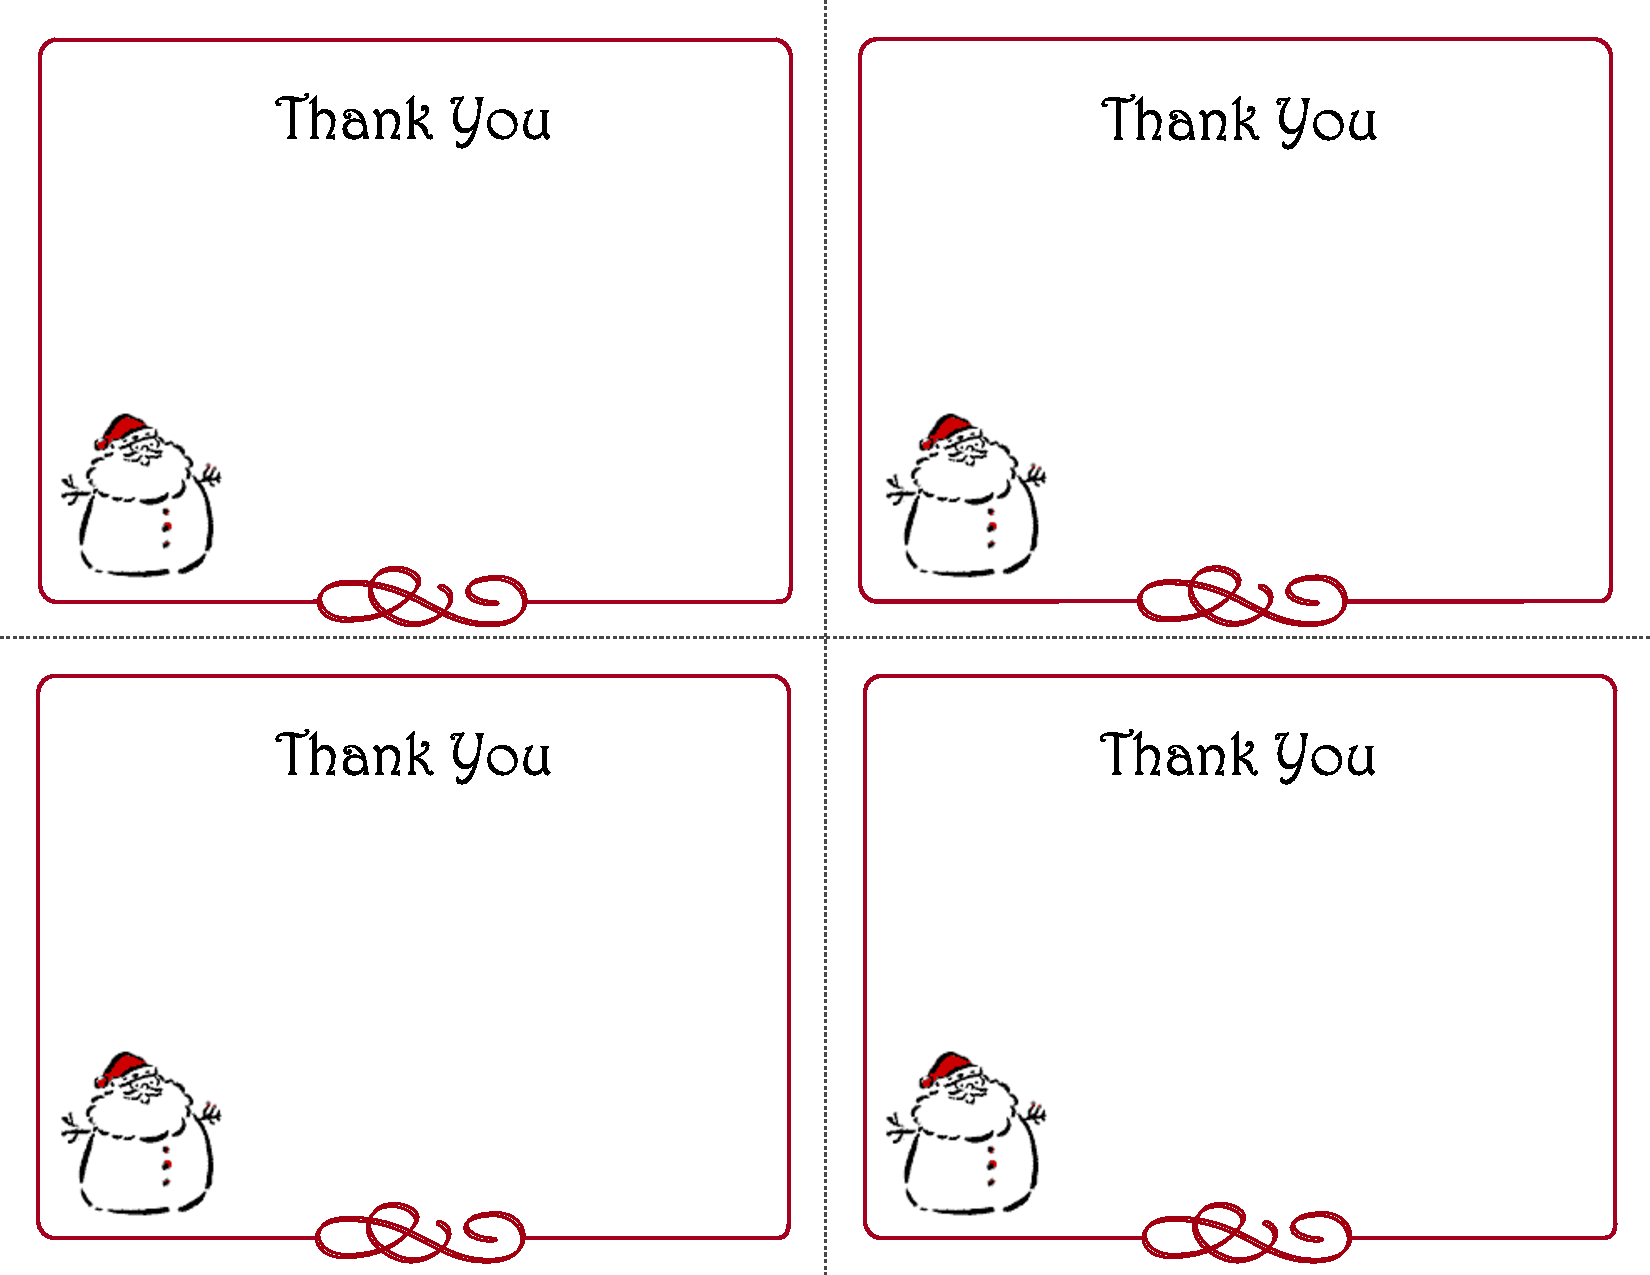 Mini Thank You Card Template - Thank You Card Free Printable Template